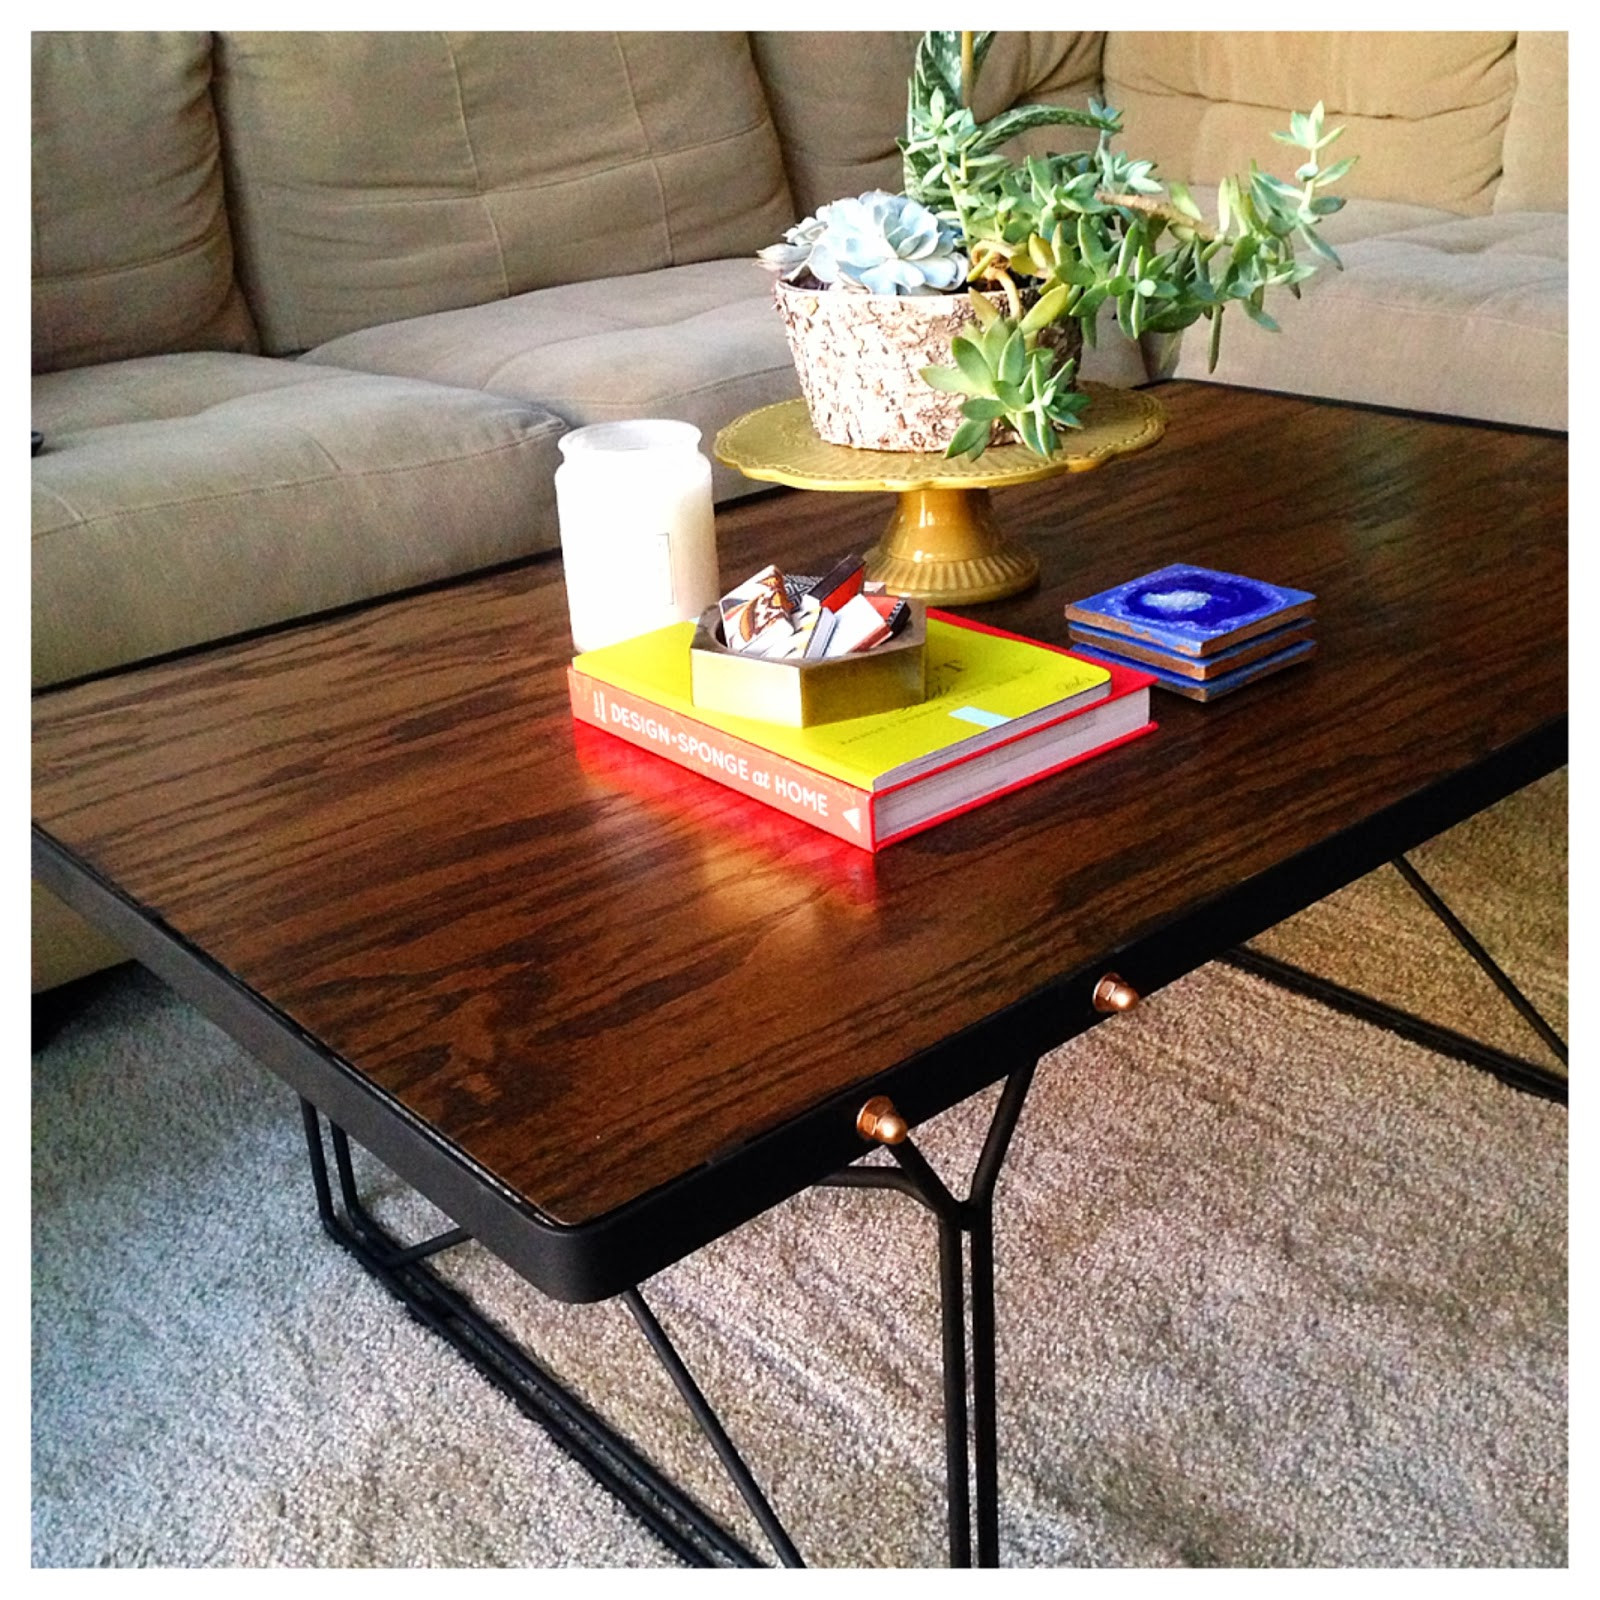 Best ideas about DIY Industrial Coffee Table . Save or Pin for a song DIY [industrial coffee table reveal] Now.